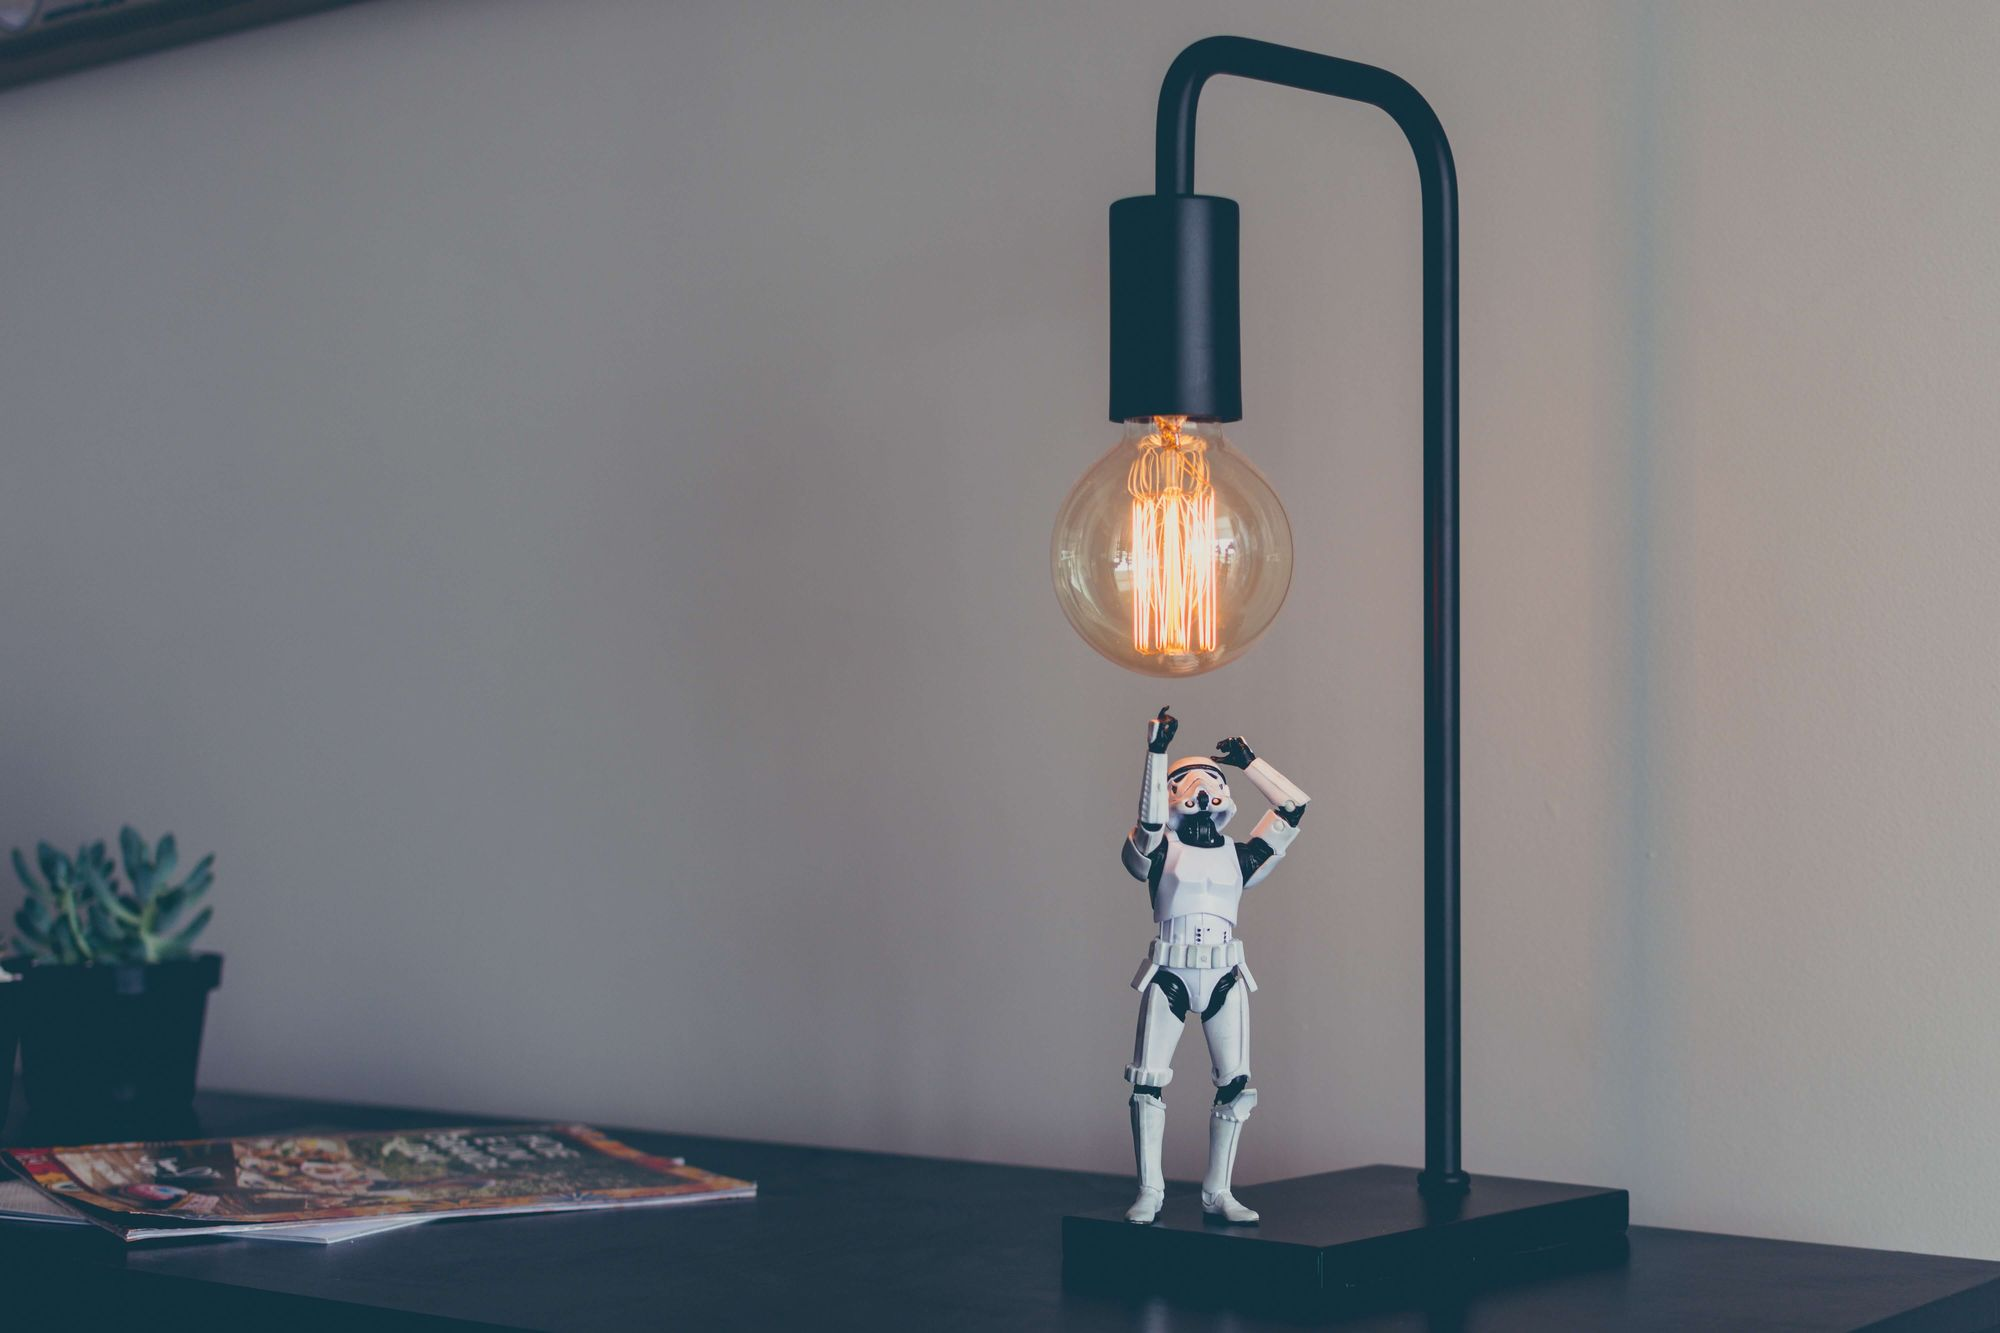 Stormtrooper trying to touch a light bulb